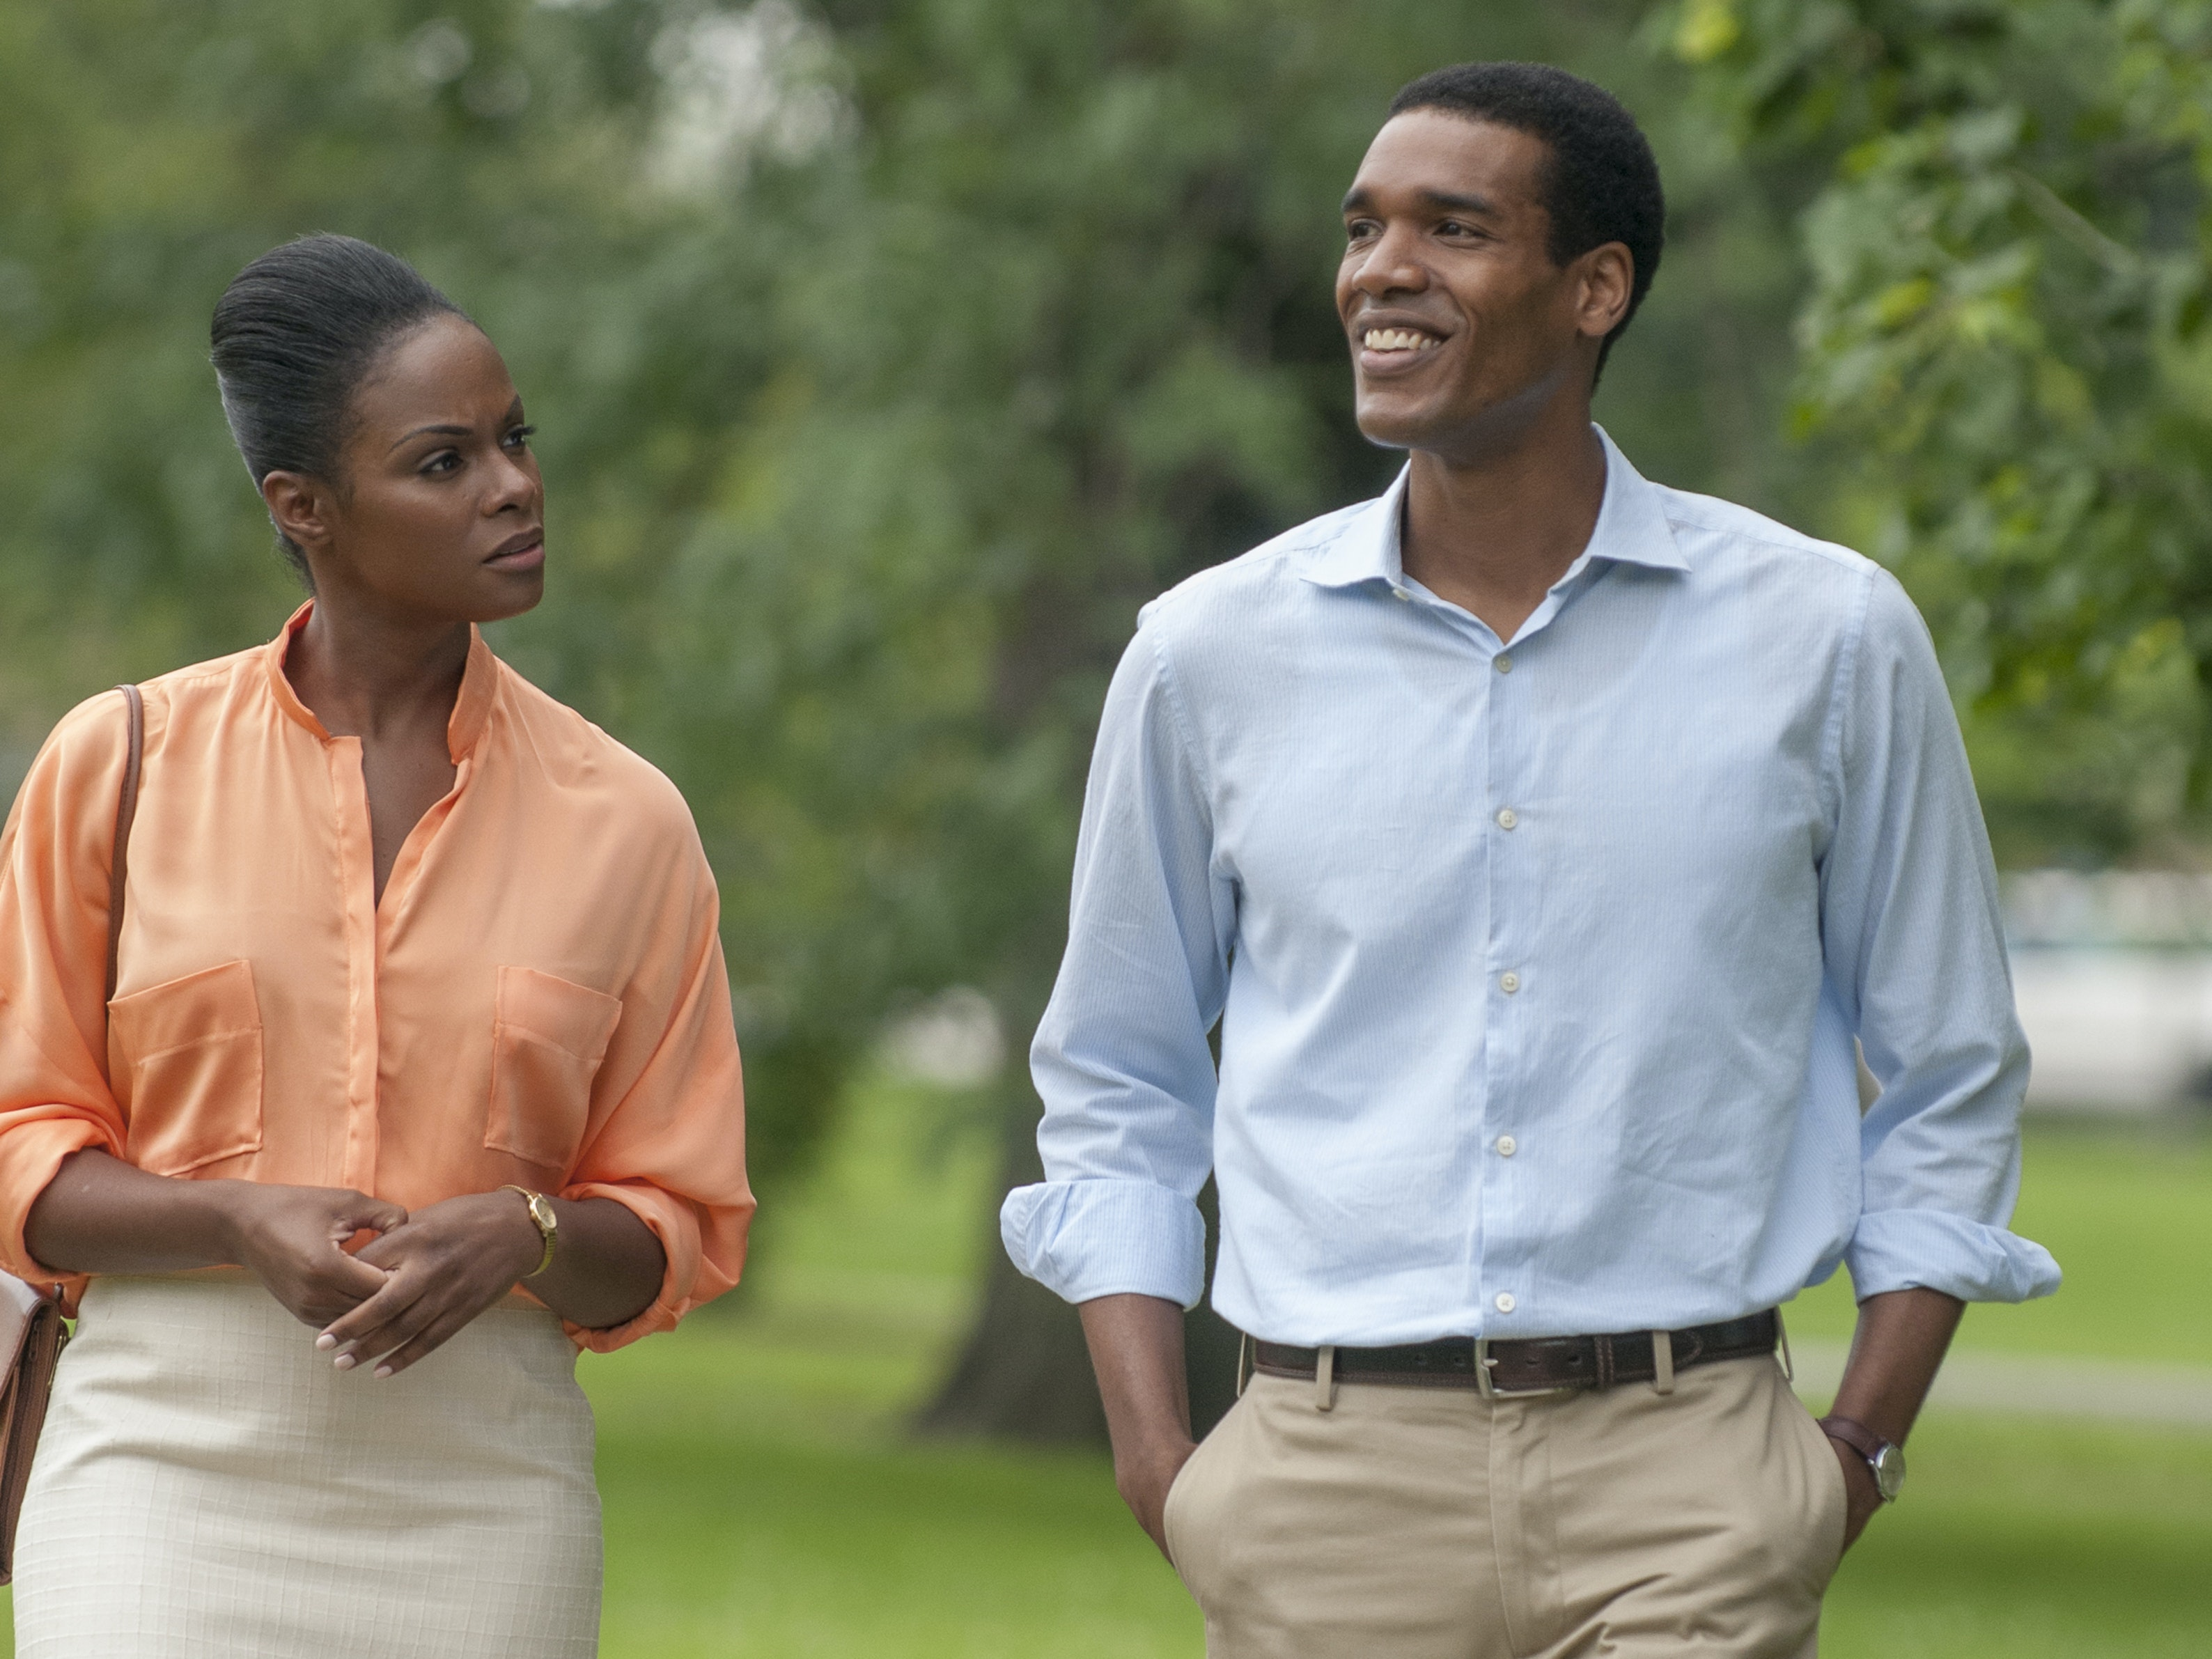 Tika Sumpter and Parker Sawyers in 'Southside With You'